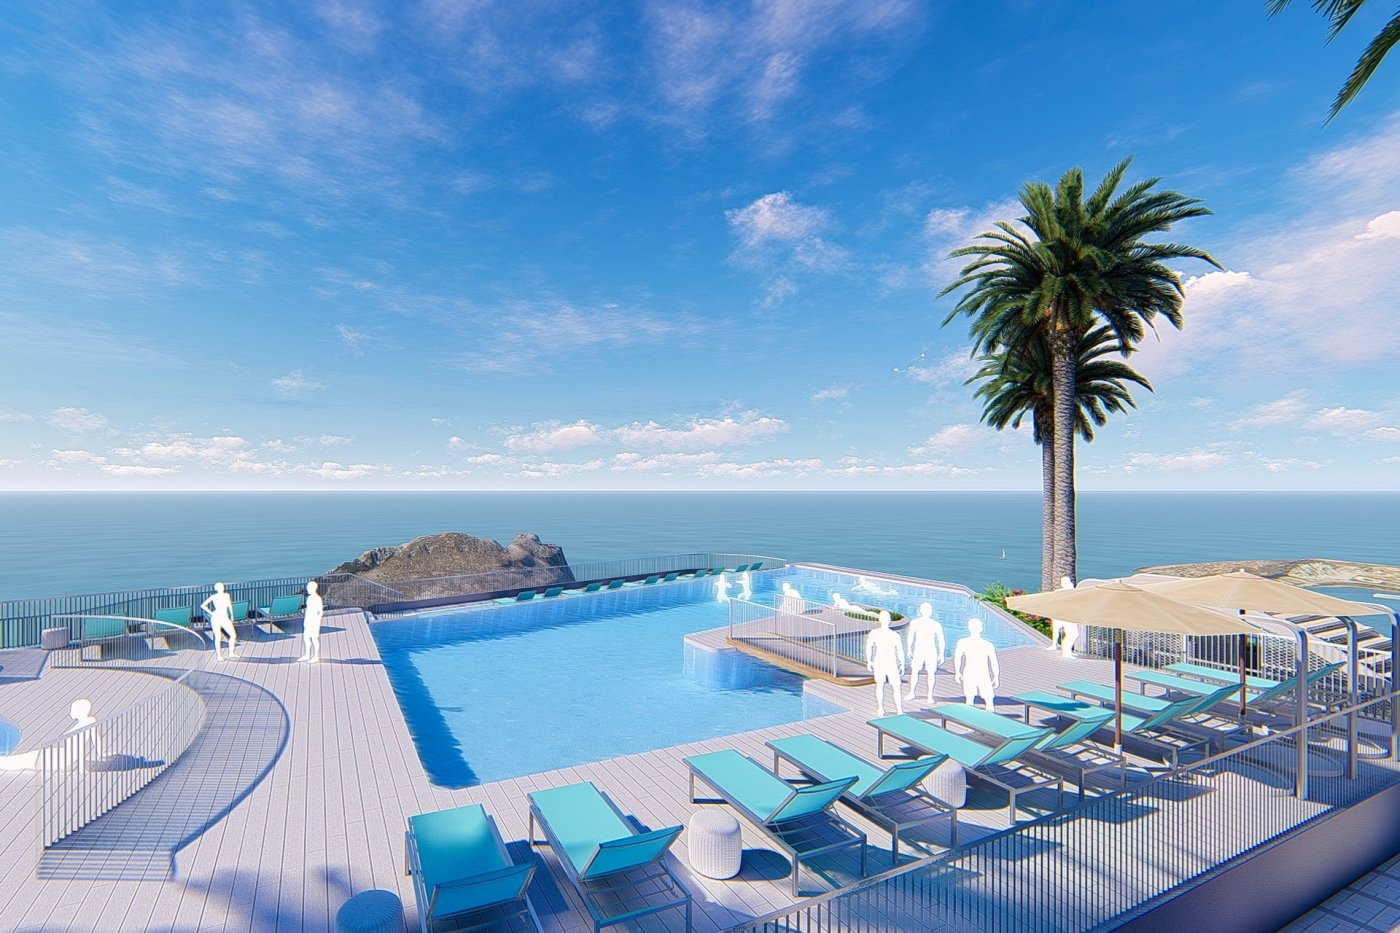 Gallery Image 10 of Luxury 1 bed penthouse with massive 59 m2 solarium and exceptional views